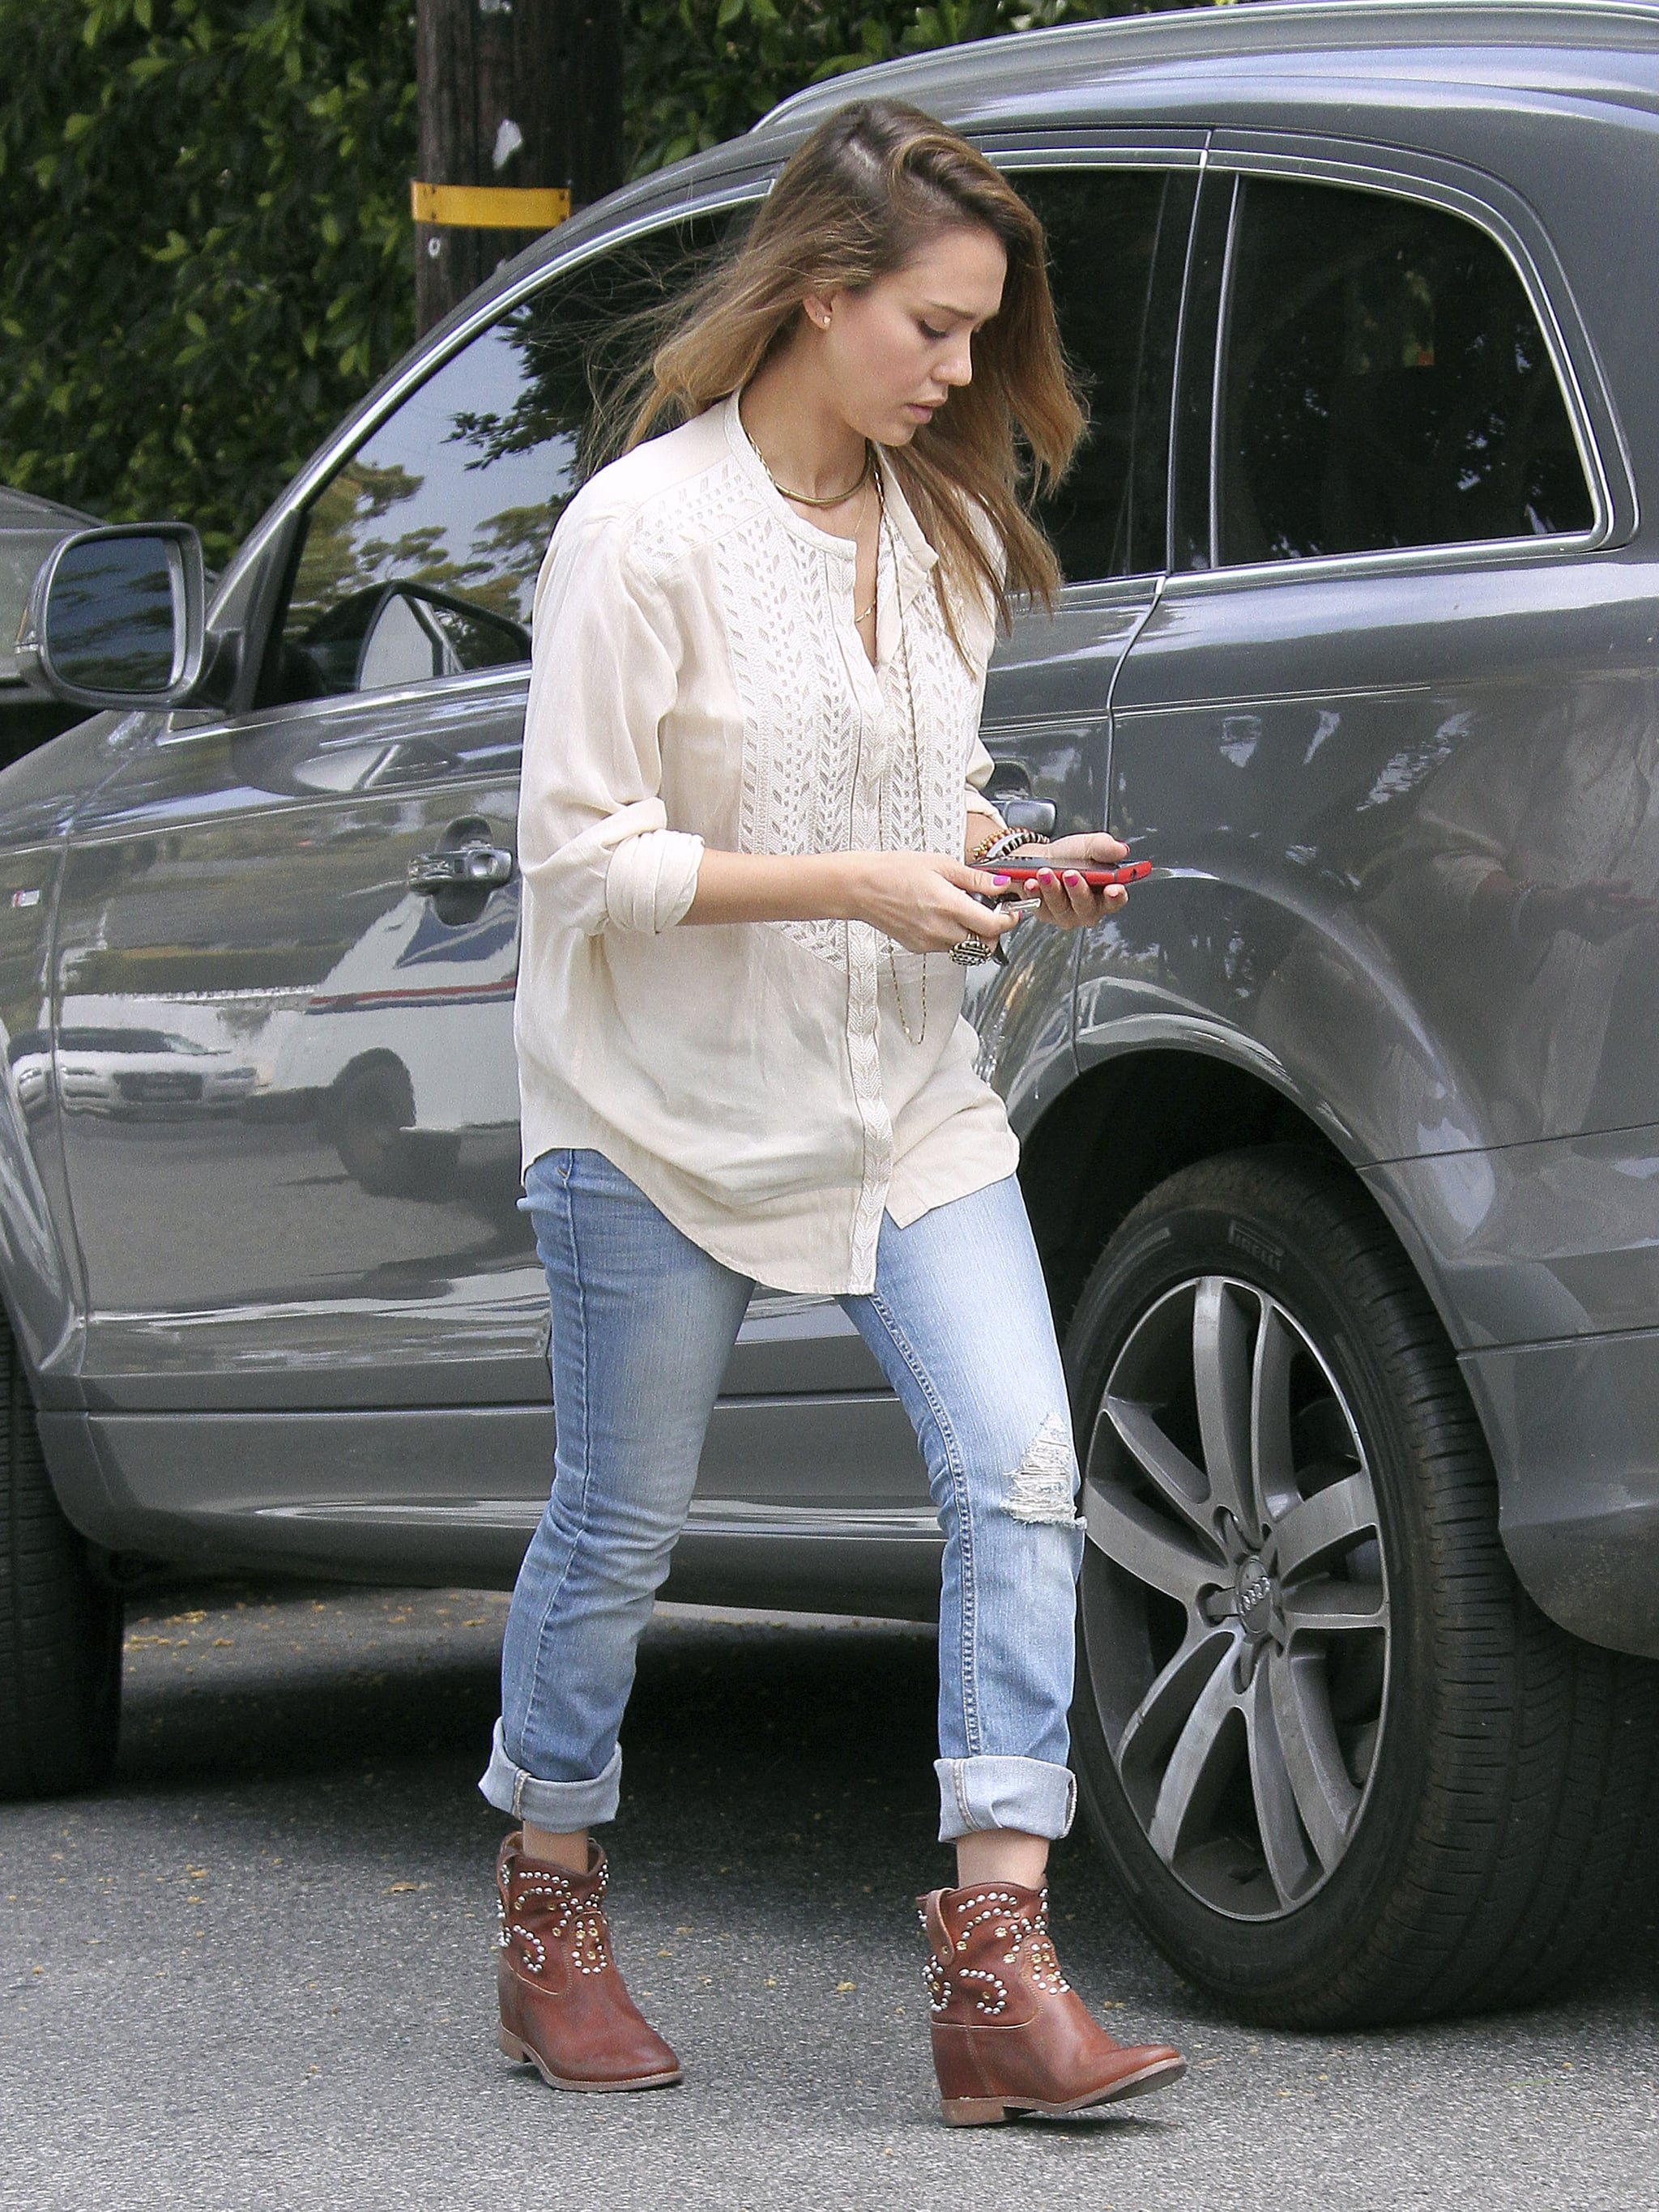 While running errands in Santa Monica, Alba showed a little country flavor in a gauzy button-down, cuffed denim, and studded cowboy boots by Isabel Marant.